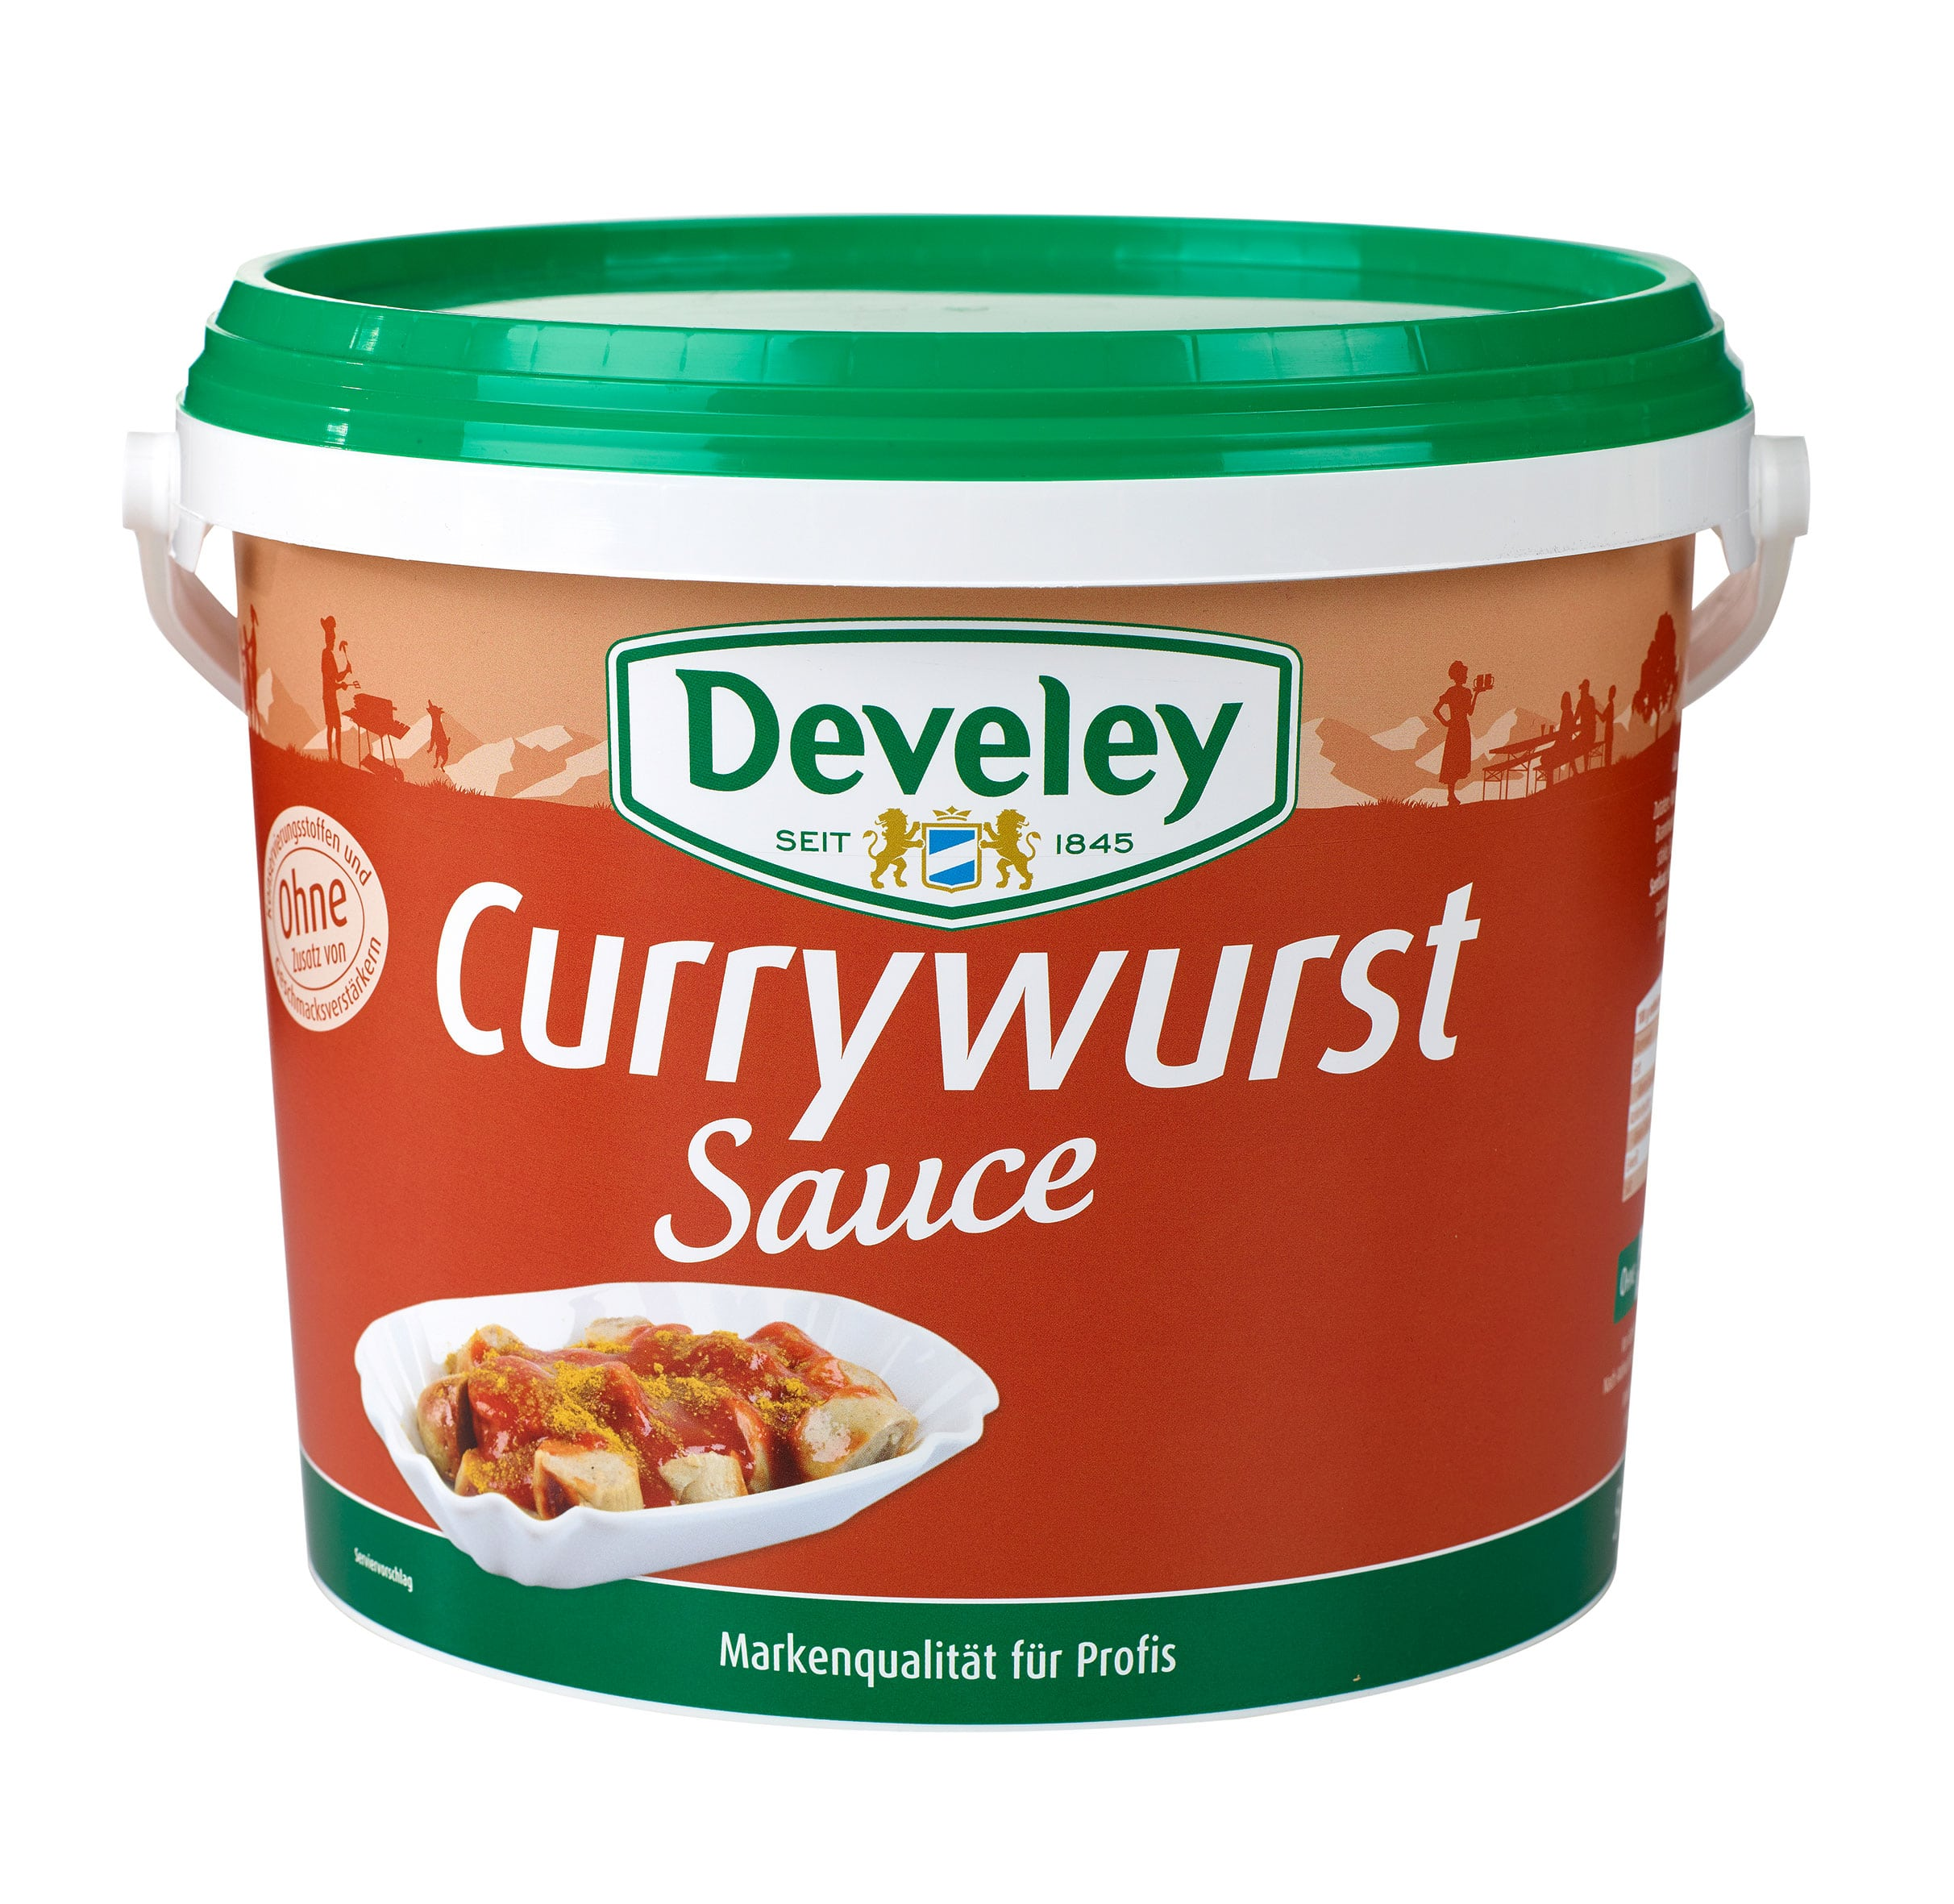 Develey Currywurst Sauce